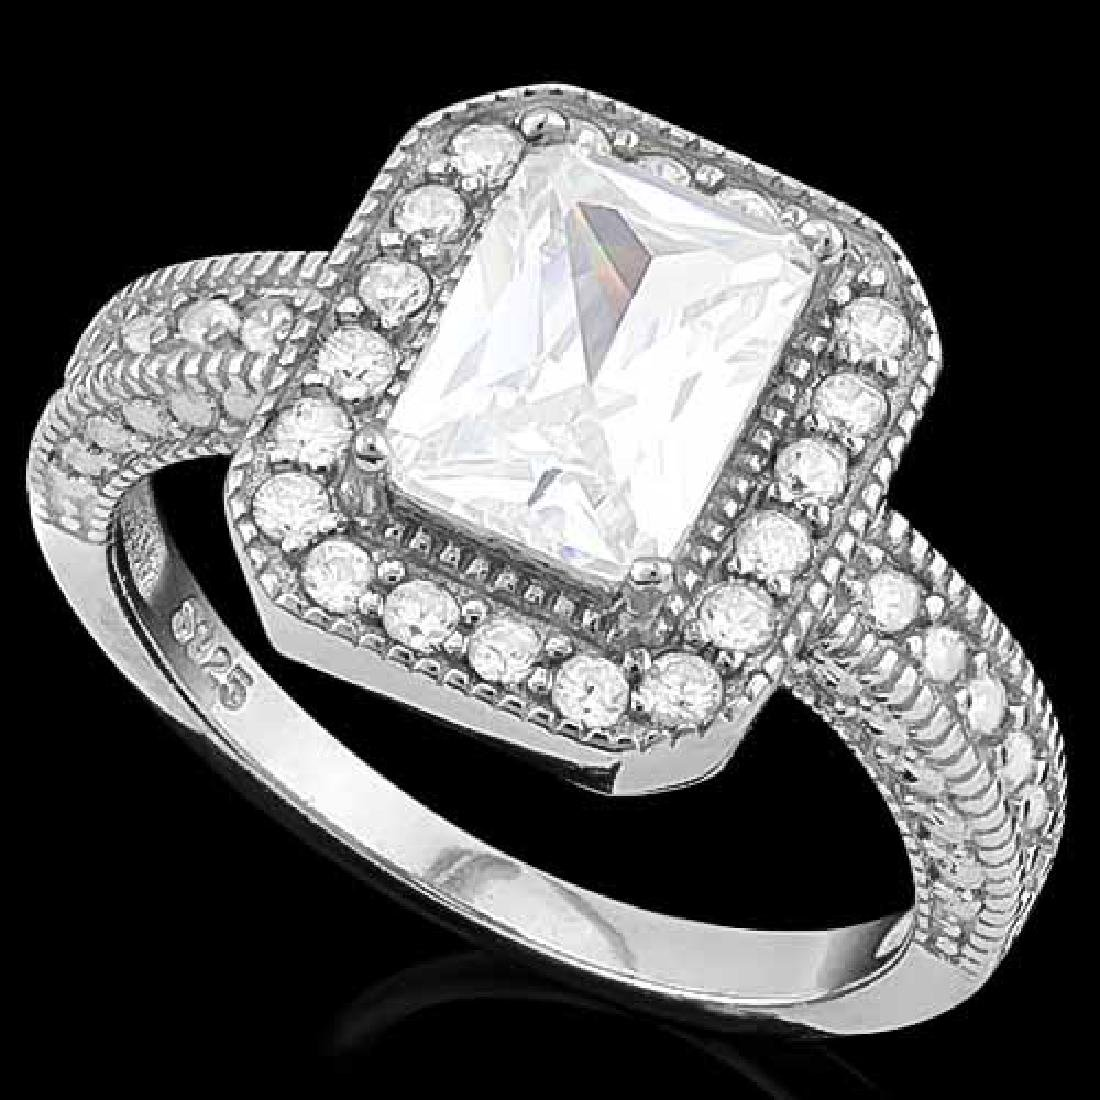 2 CARAT (35 PCS) FLAWLESS CREATED DIAMOND 925 STERLING